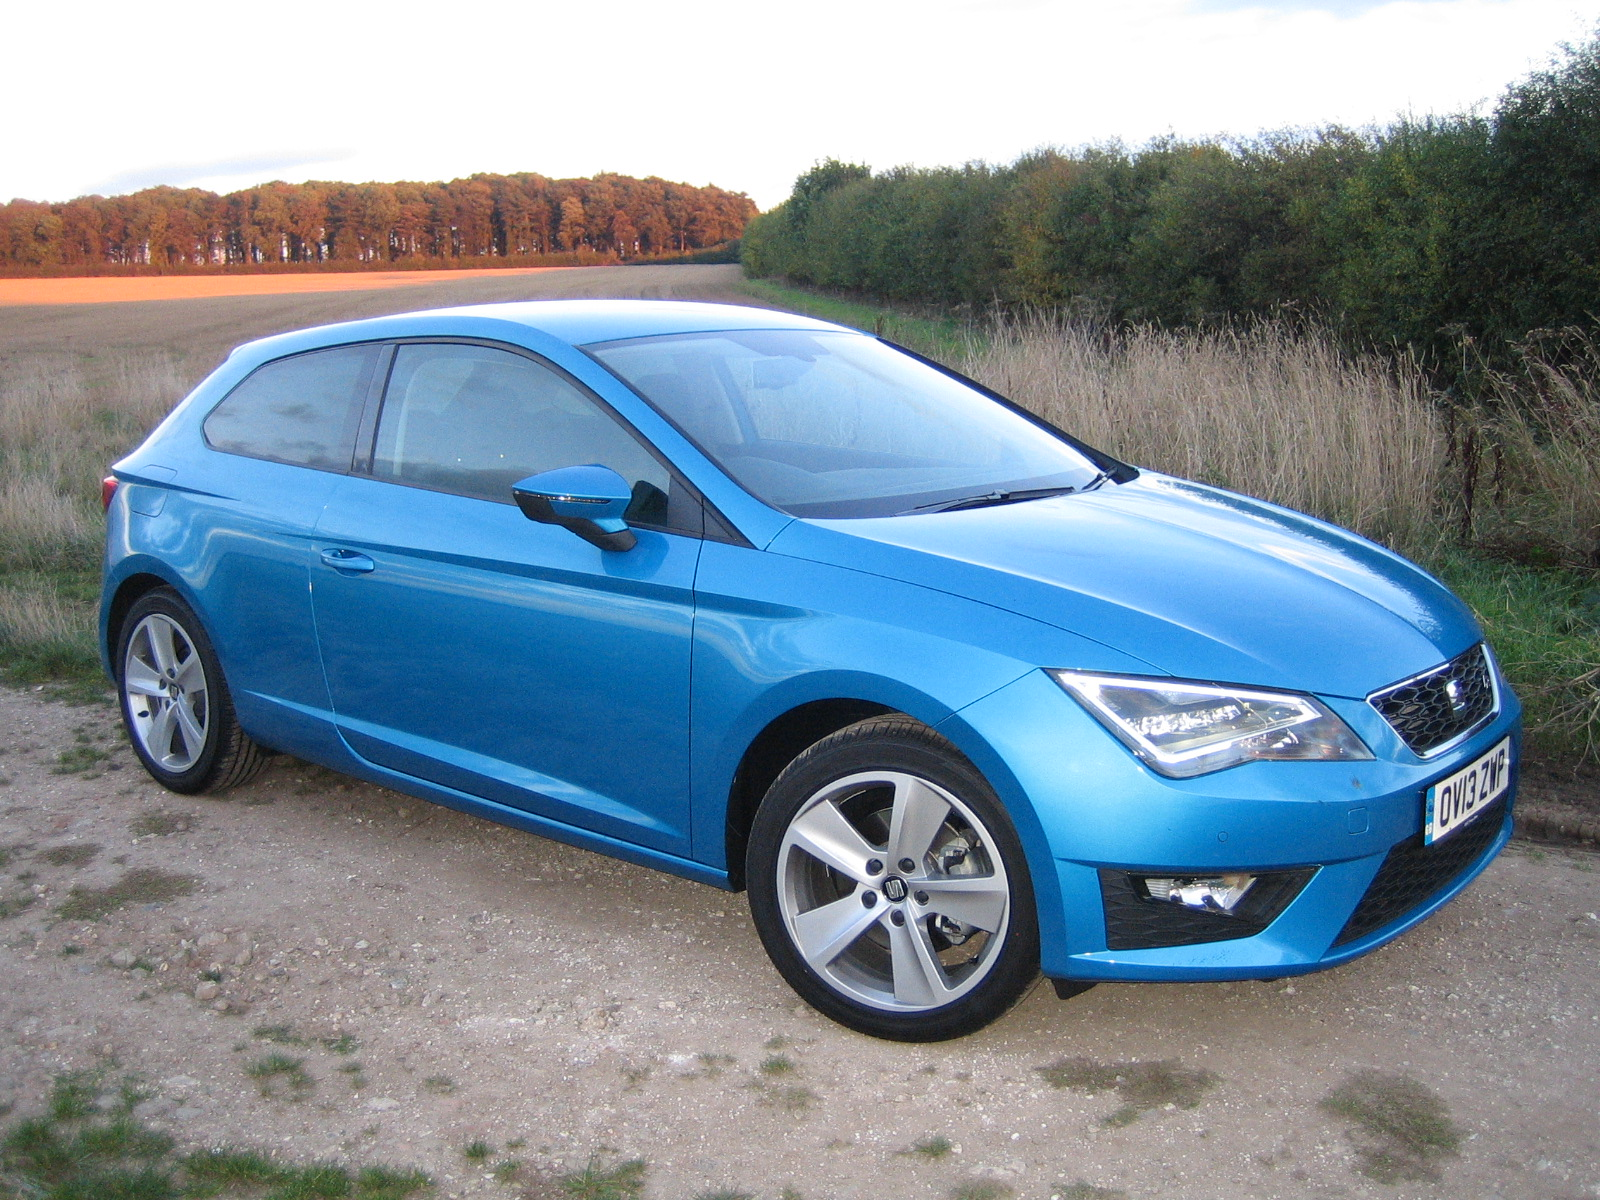 seat leon sc fr 2 0 tdi 150 ps road test review wheel world reviews. Black Bedroom Furniture Sets. Home Design Ideas